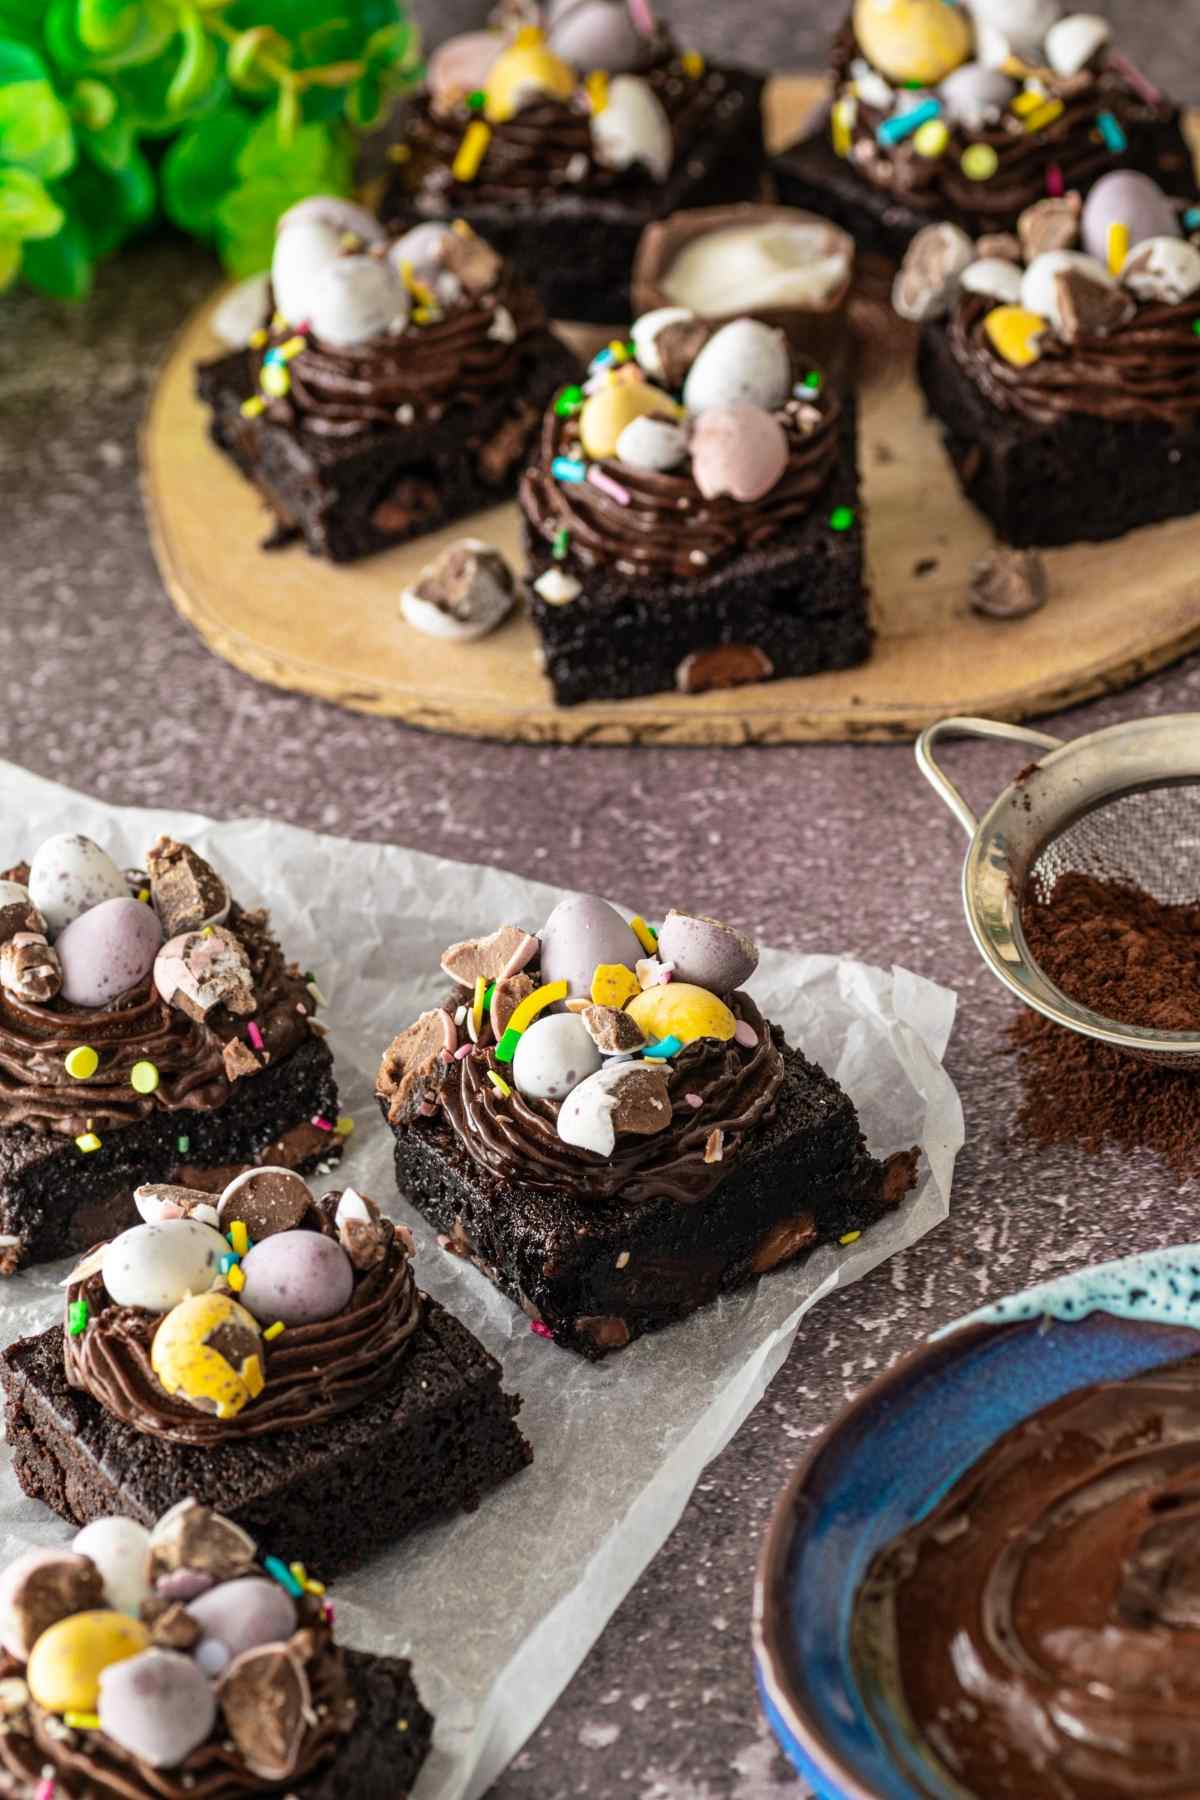 Brownies on baking paper next to sieve with cocoa powder